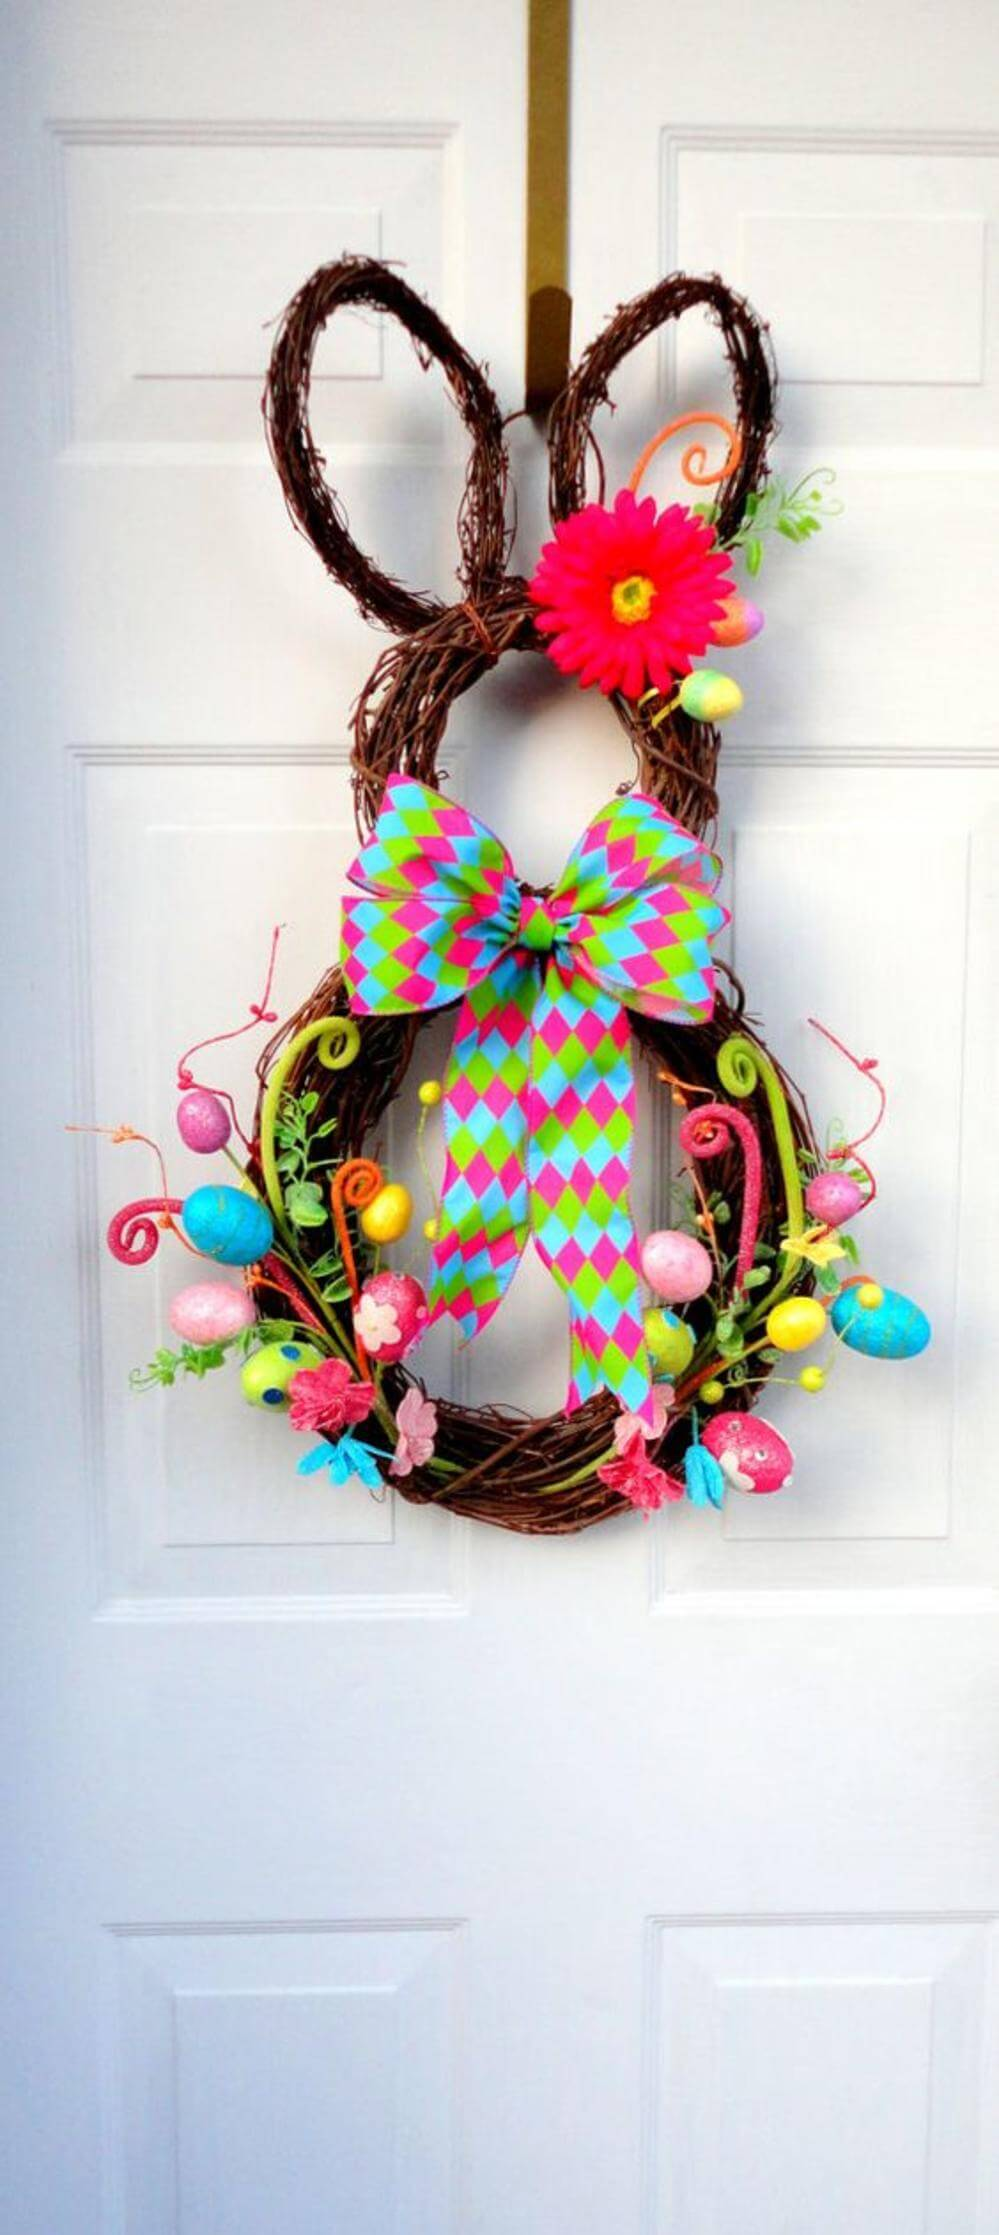 Diy easter decorations 17 ideas how to make a cute easter for How to make easter decorations for the home